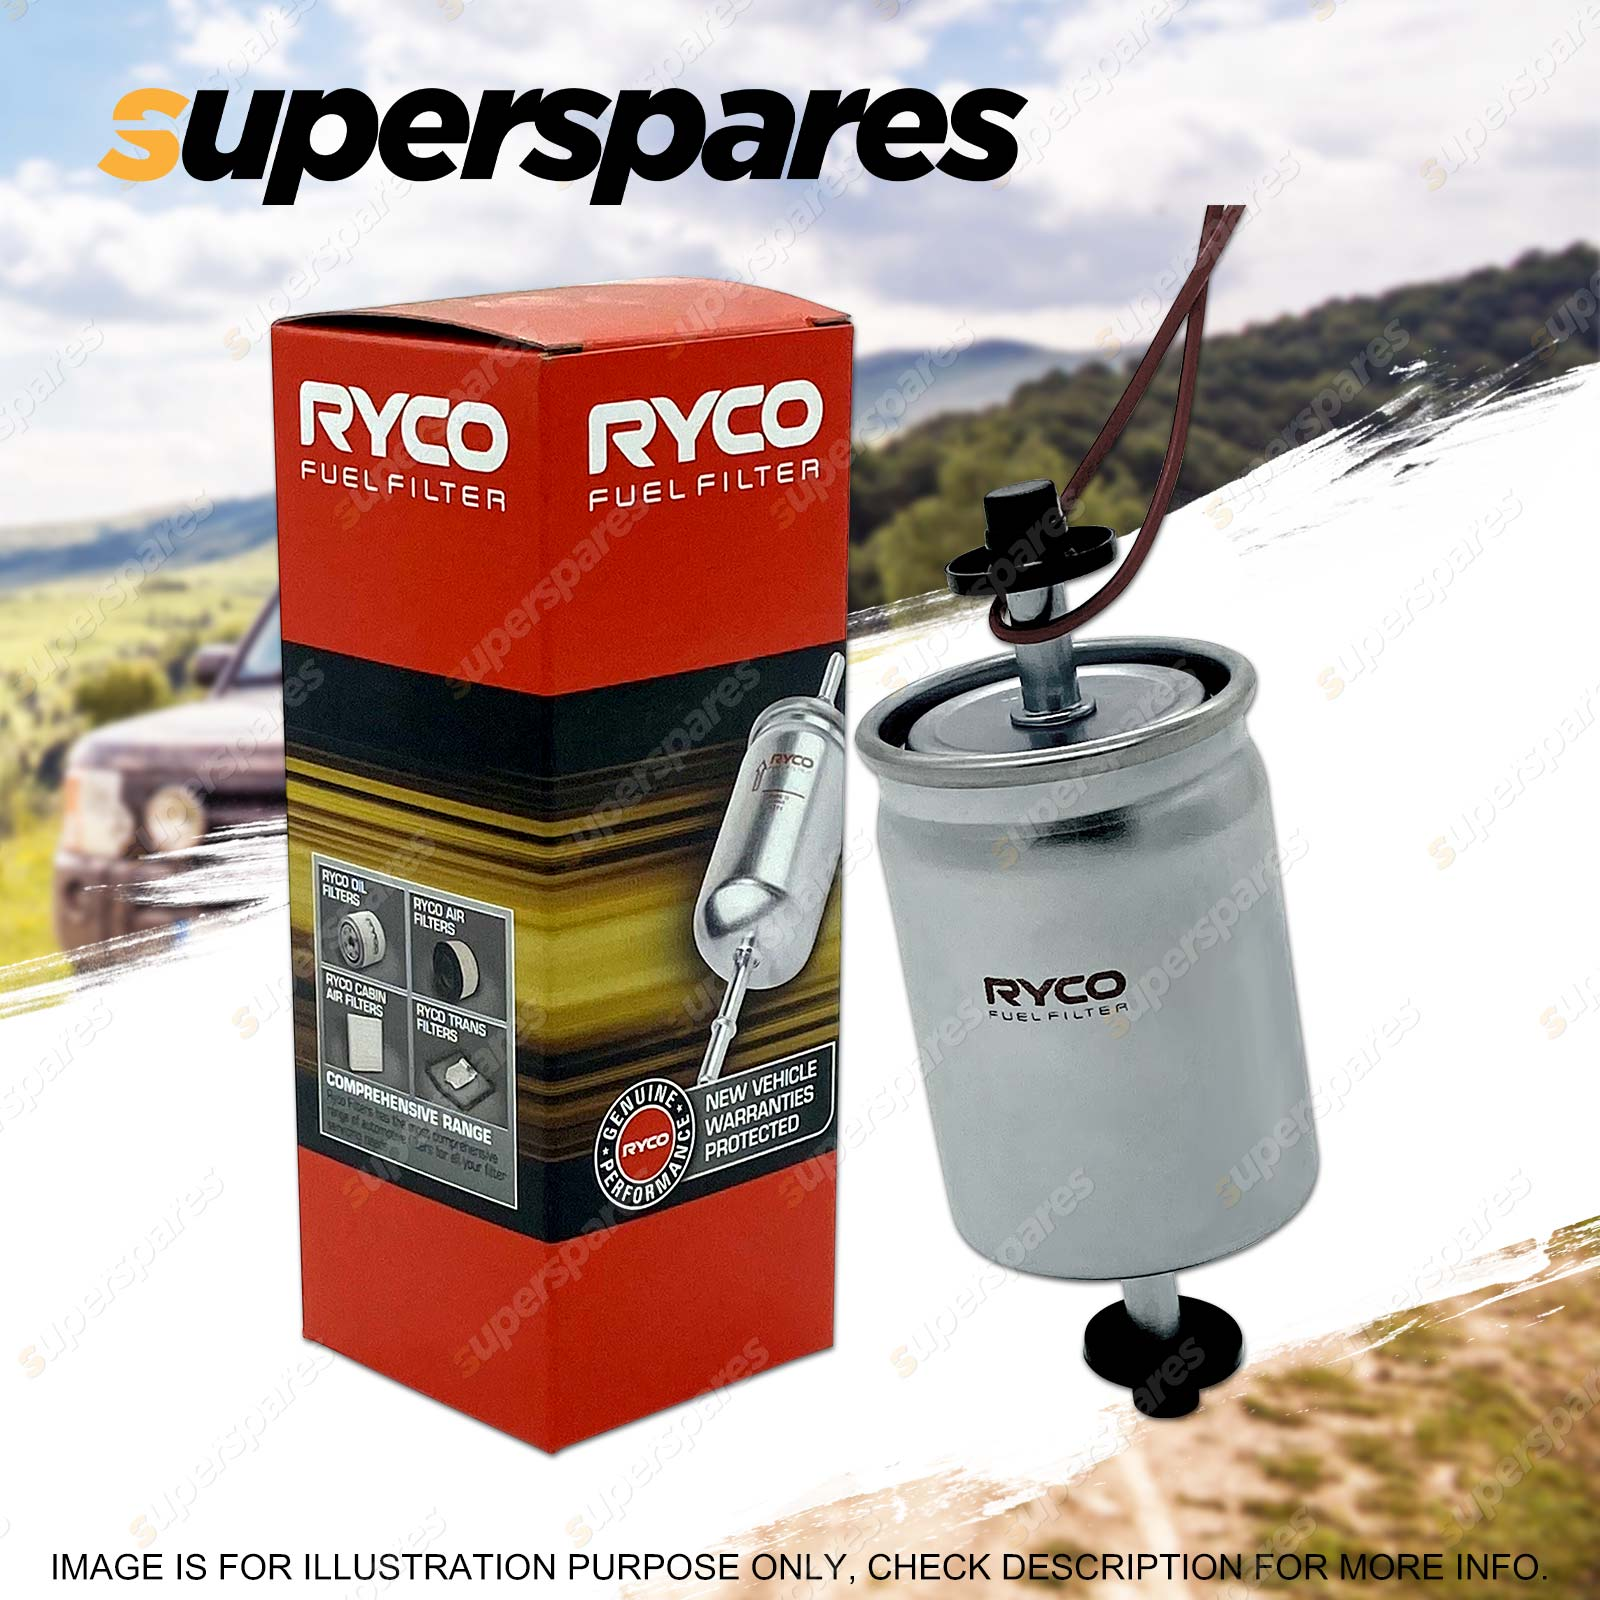 hight resolution of ryco fuel filter for toyota yaris ncp90r ncp91r ncp93r petrol incl water cooled